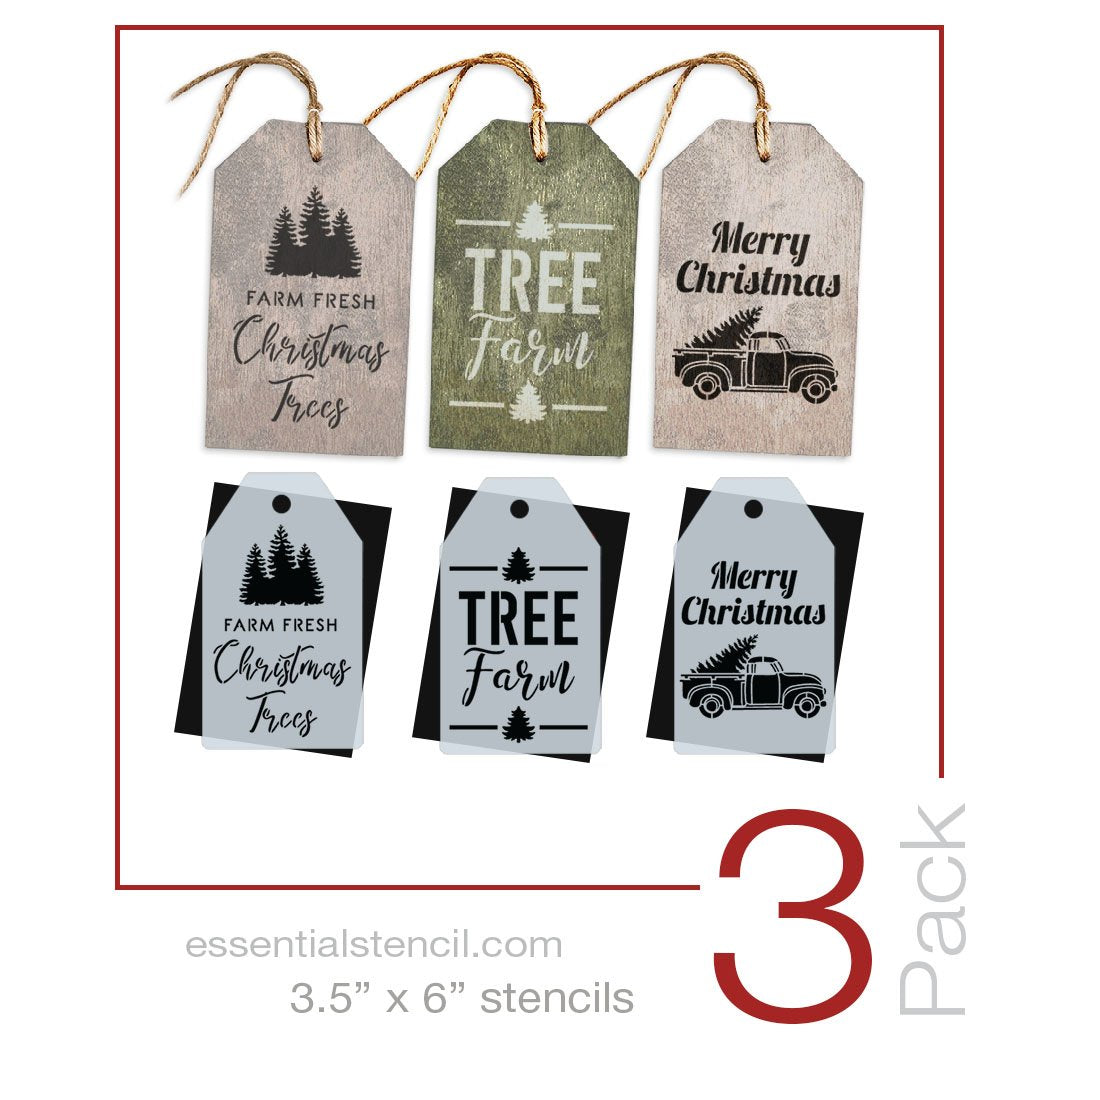 Tree Farm Mini Tag Stencil Set (3 Pack)